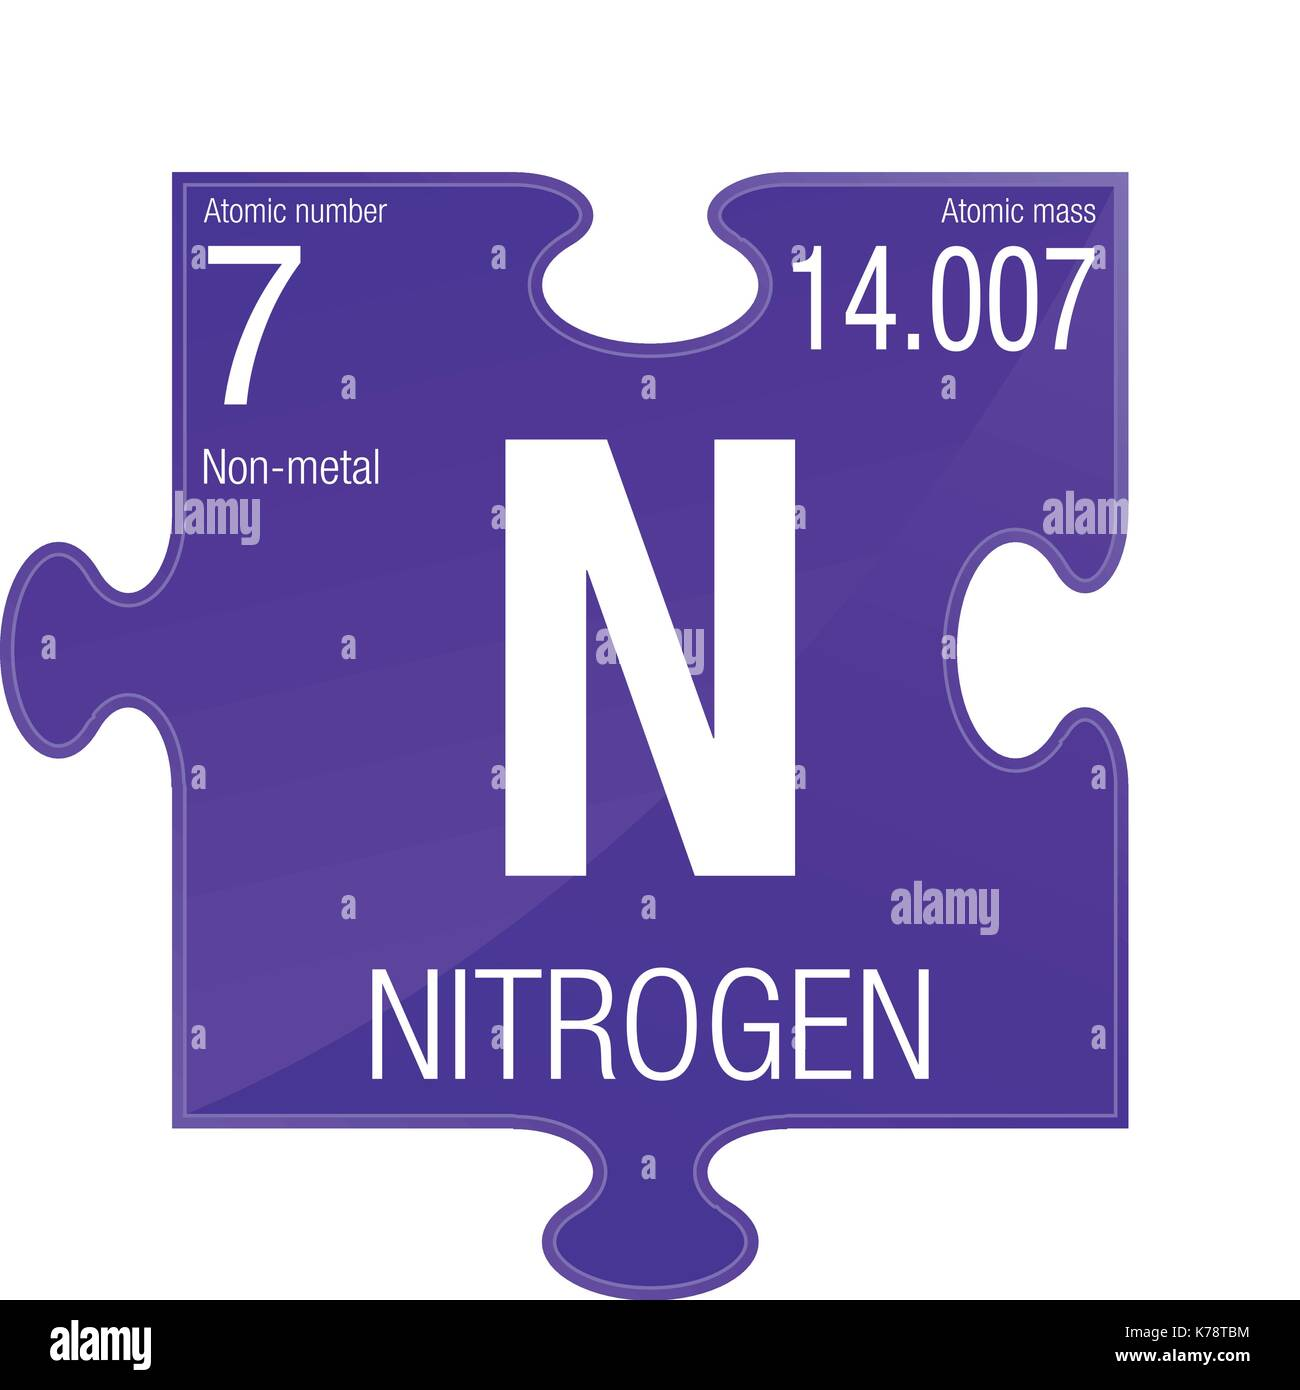 element number 7 of the periodic table of the elements chemistry puzzle piece with violet background